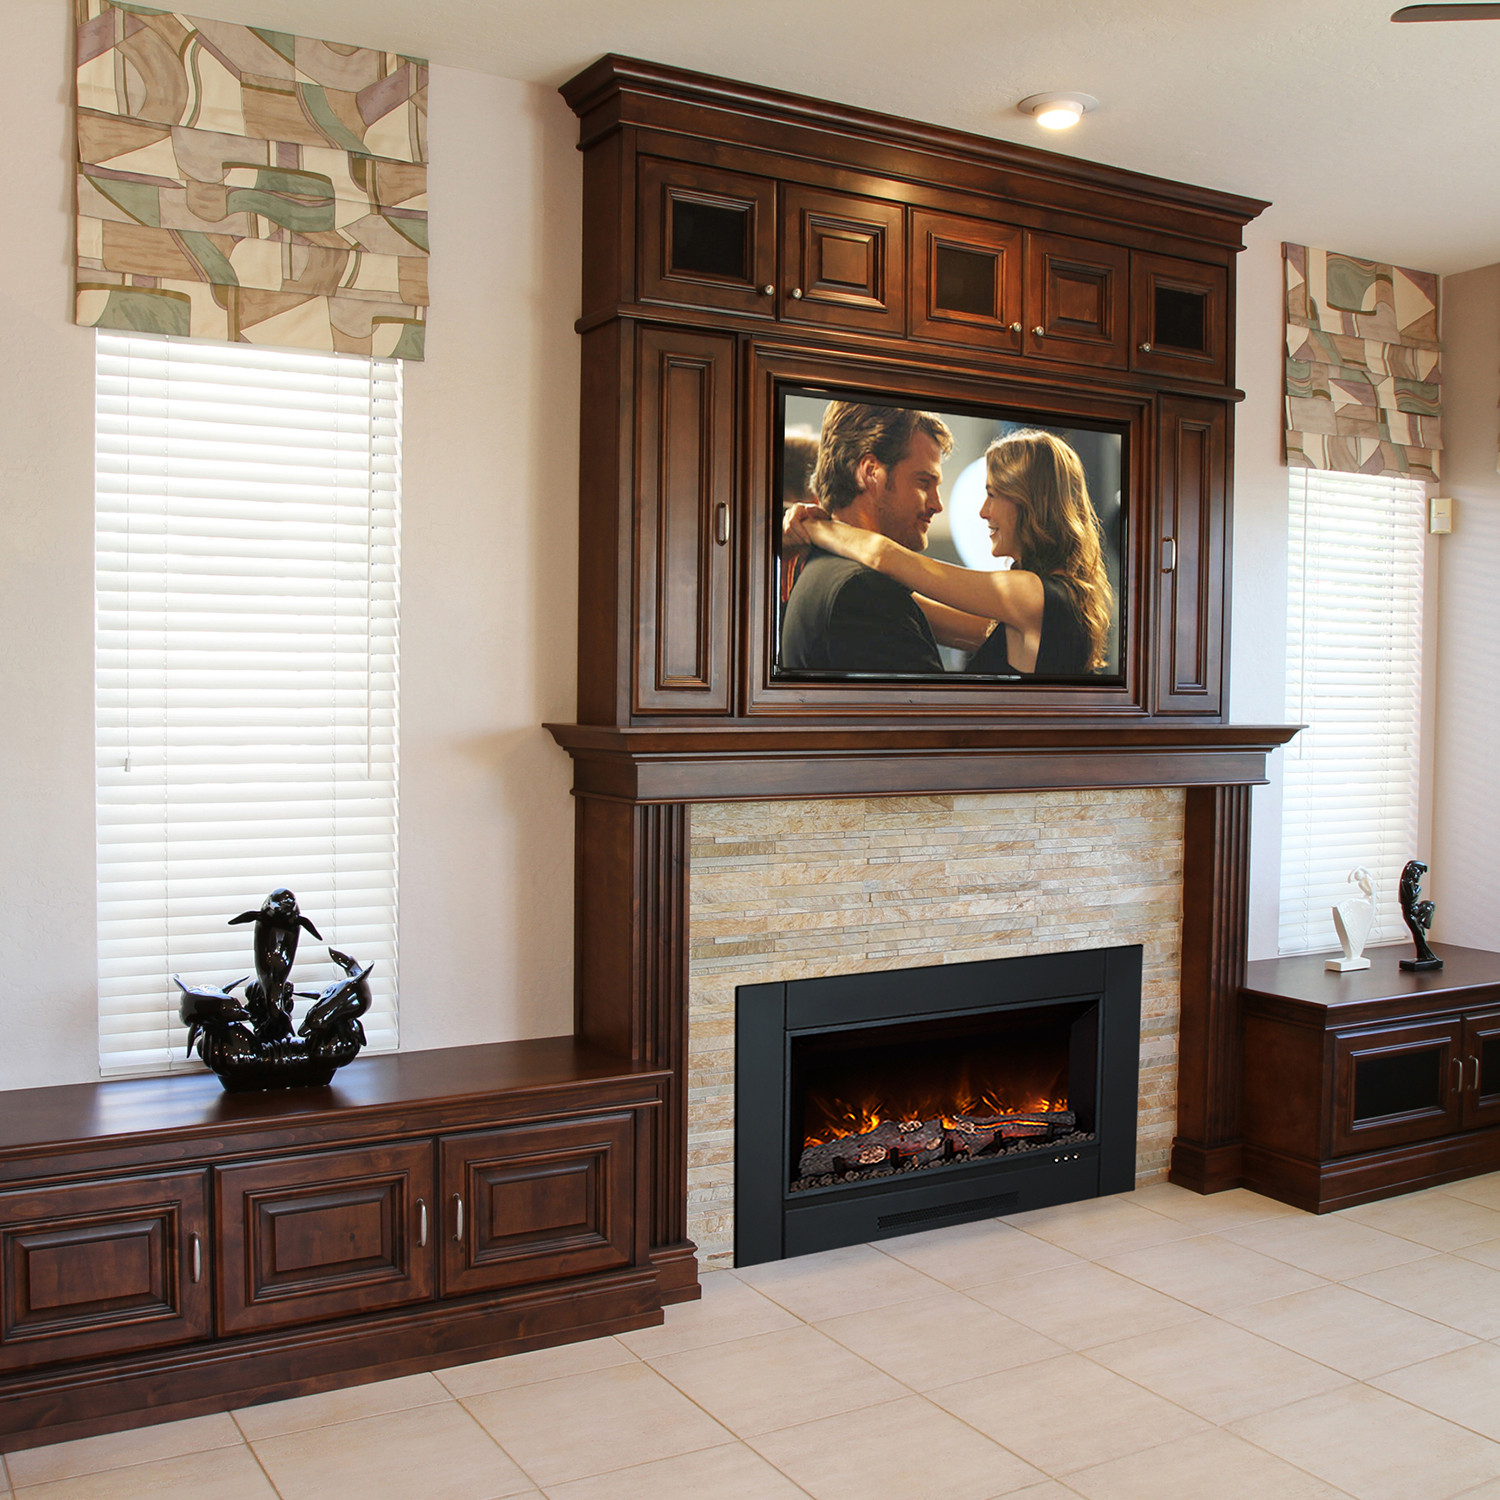 Large Electric Fireplace Best 2017 - Large Electric Fireplace Inserts - Best Fireplace 2017